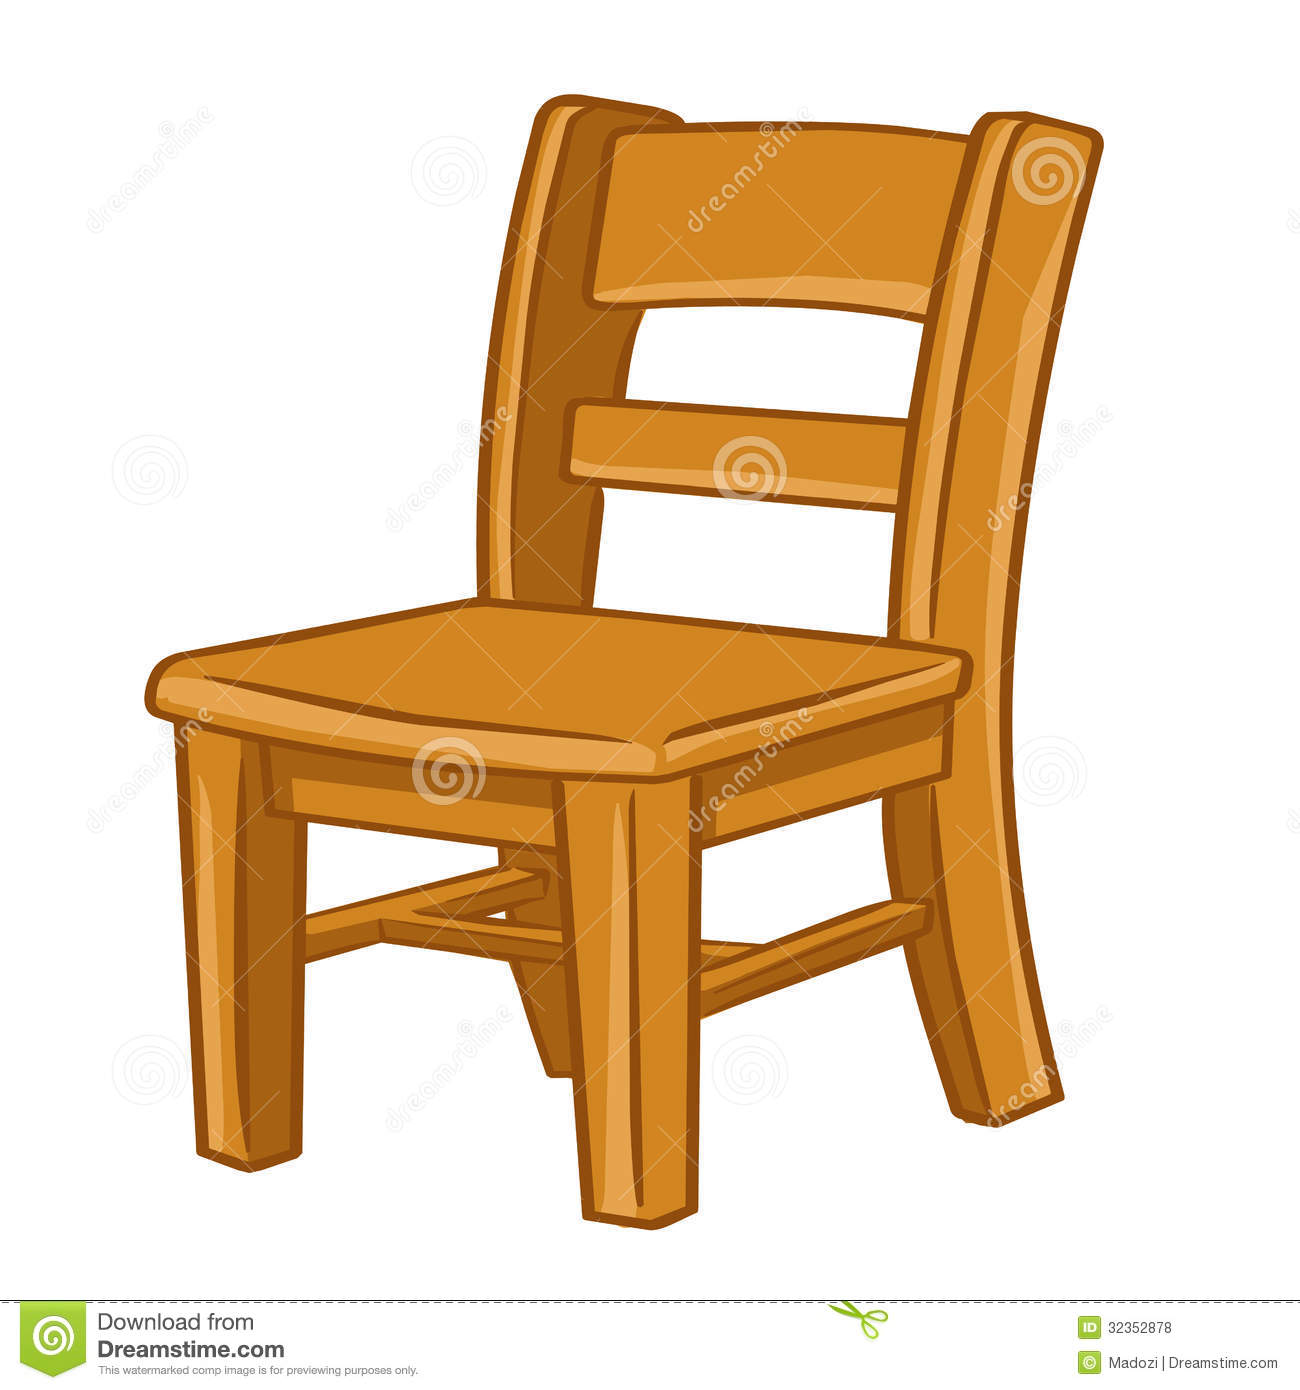 Chair Clip Art Free | Clipart Panda - Free Clipart Images picture black and white